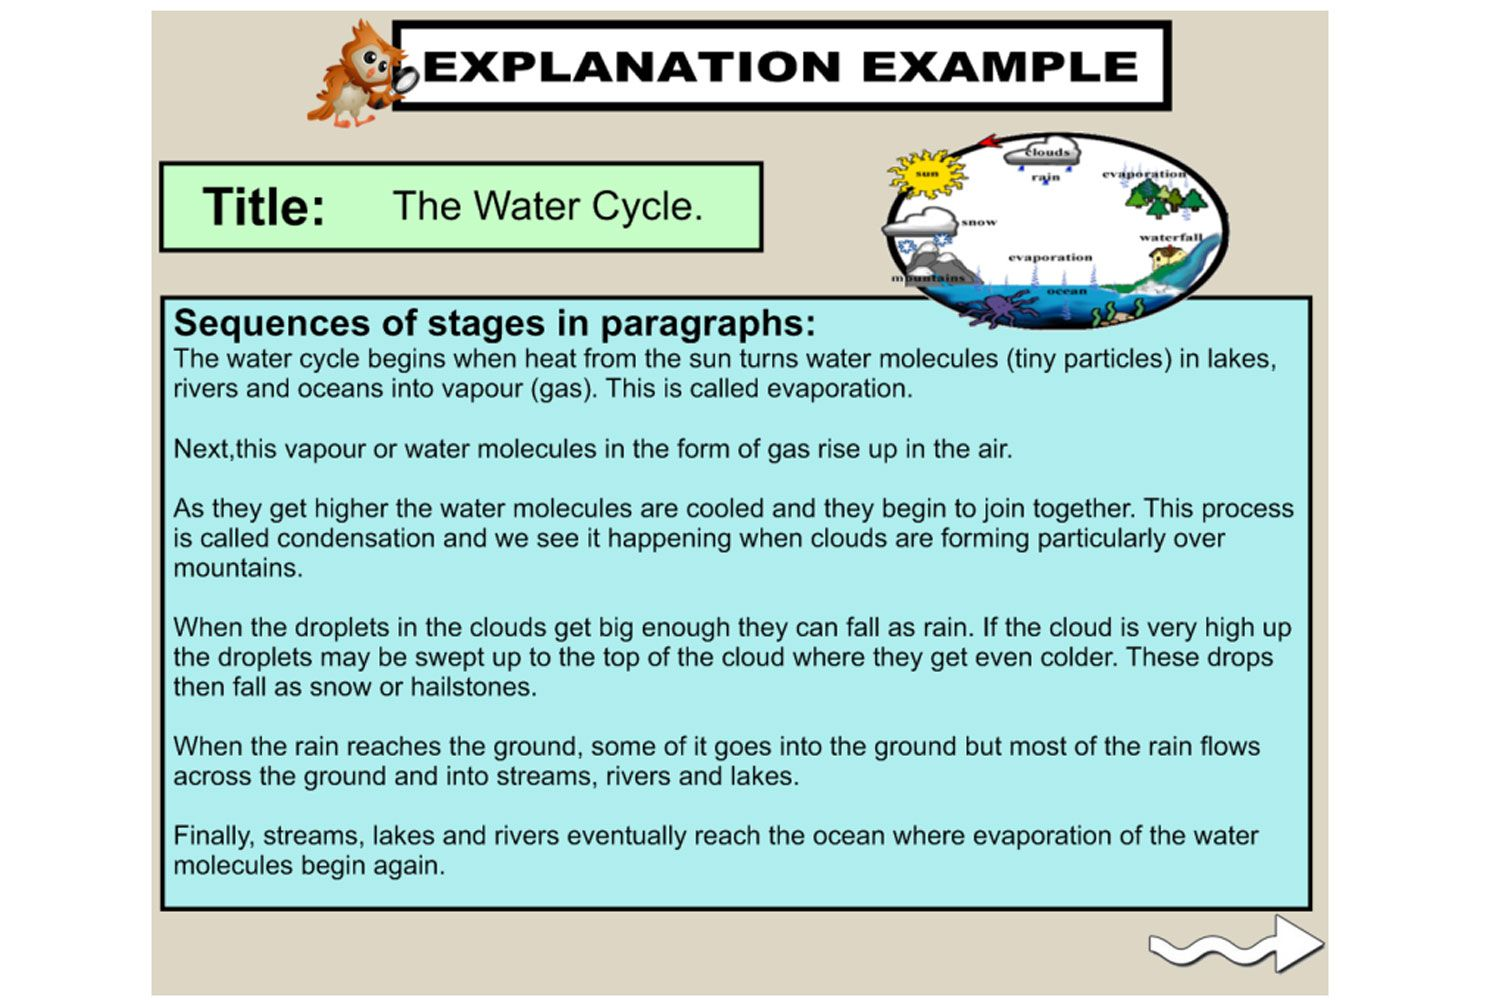 Explicitly Demonstrate The Structure Of An Explanation